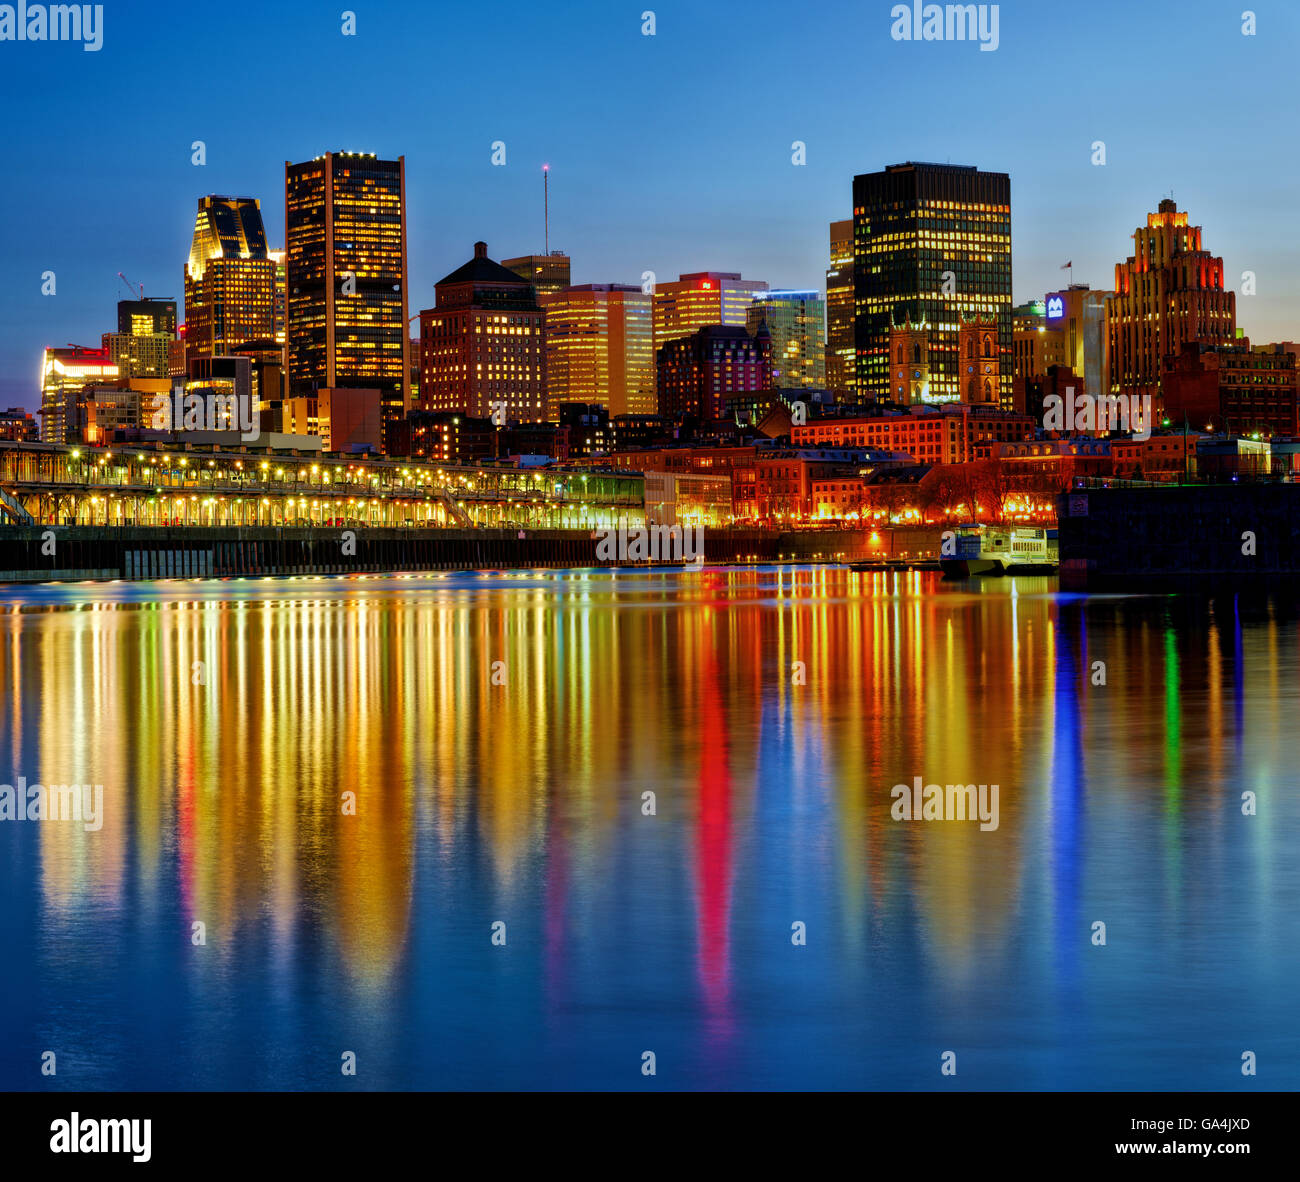 montreal-old-port-at-dusk-reflected-in-the-st-lawrence-river-GA4JXD.jpg